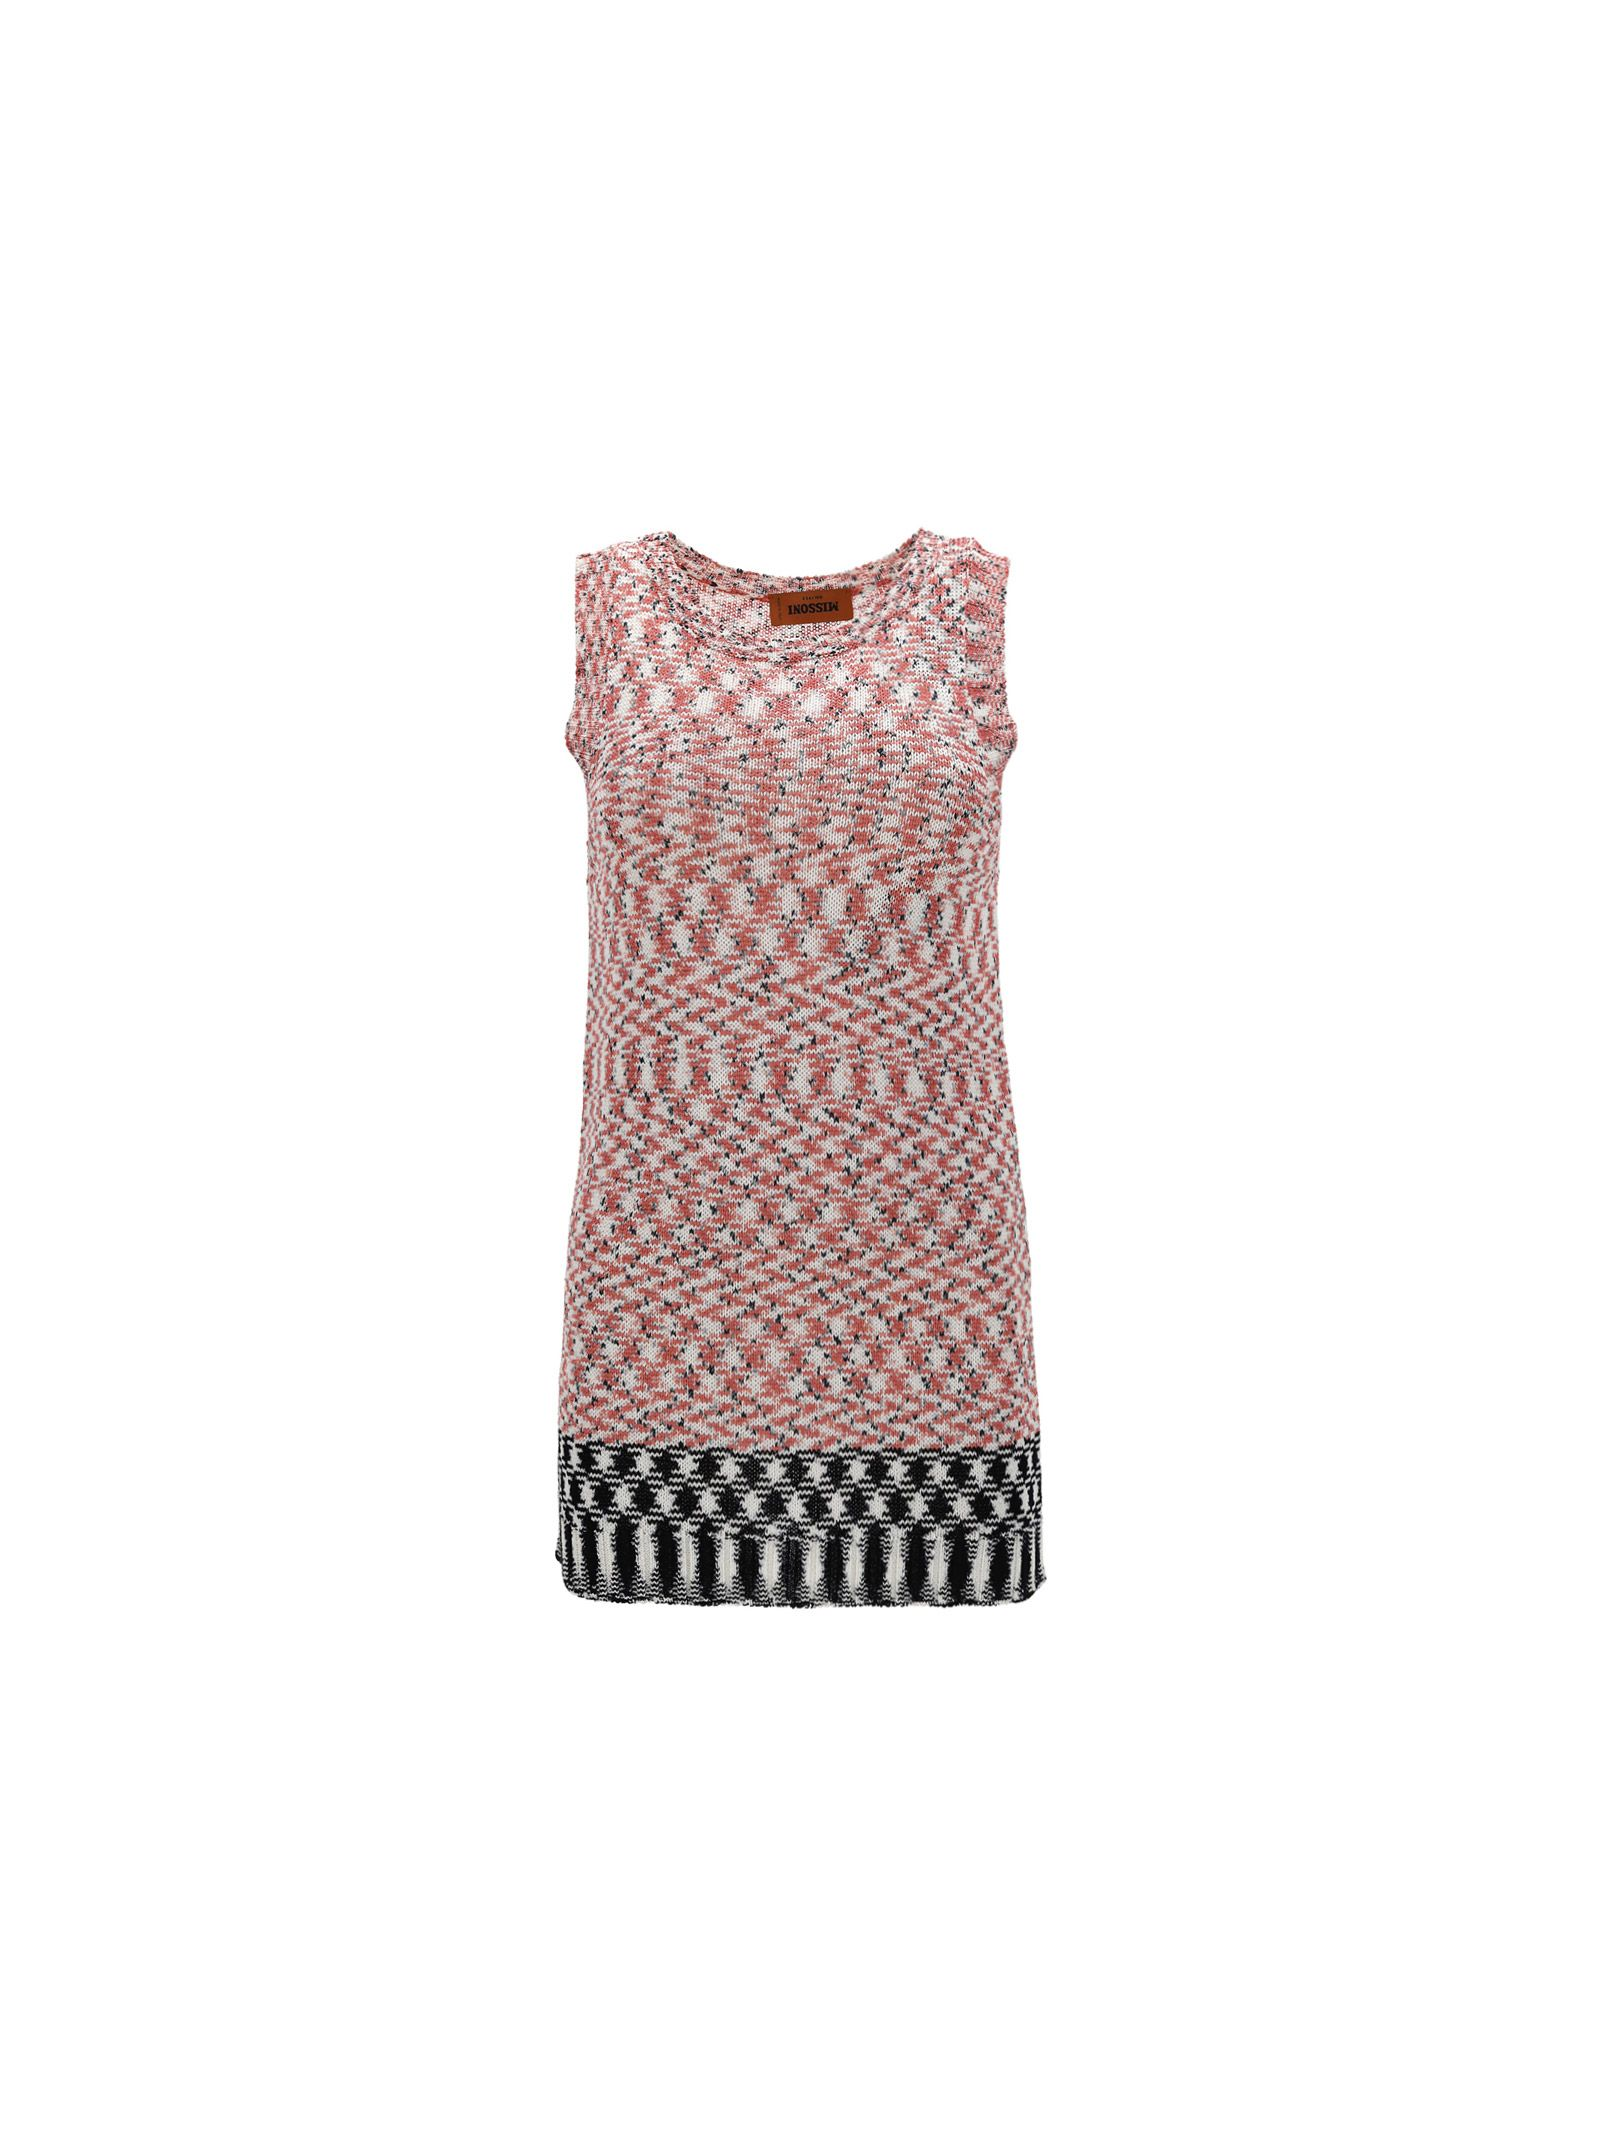 Missoni Knits MISSONI WOMEN'S PINK OTHER MATERIALS TOP